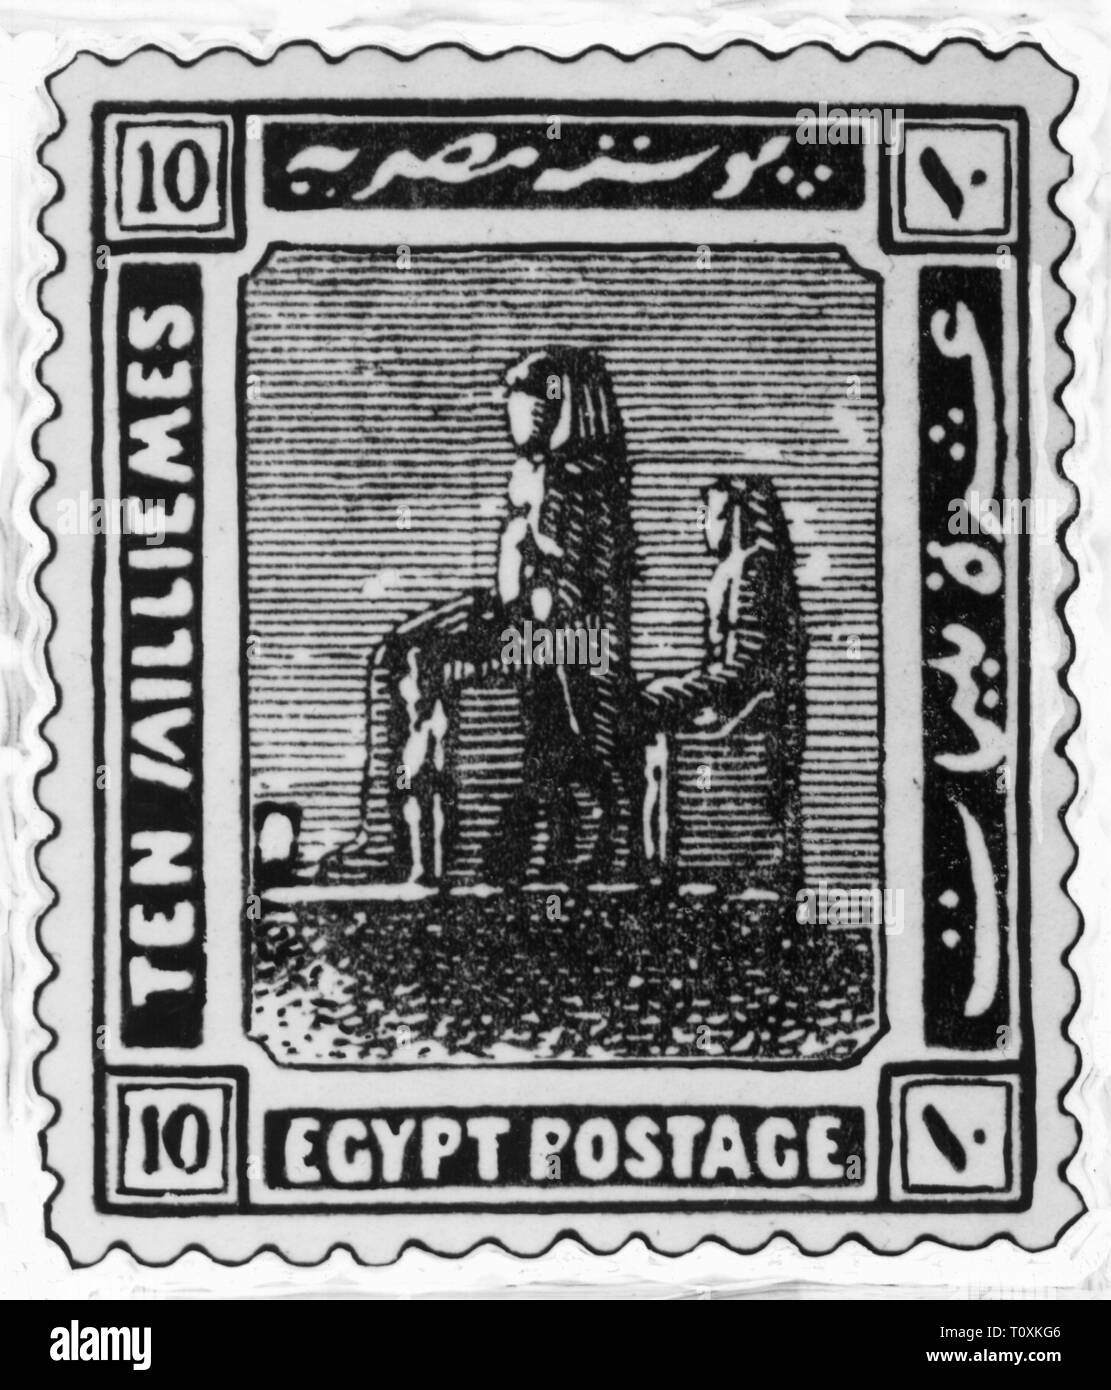 Mail Postage Stamps Egypt 10 Millimes Postage Stamp